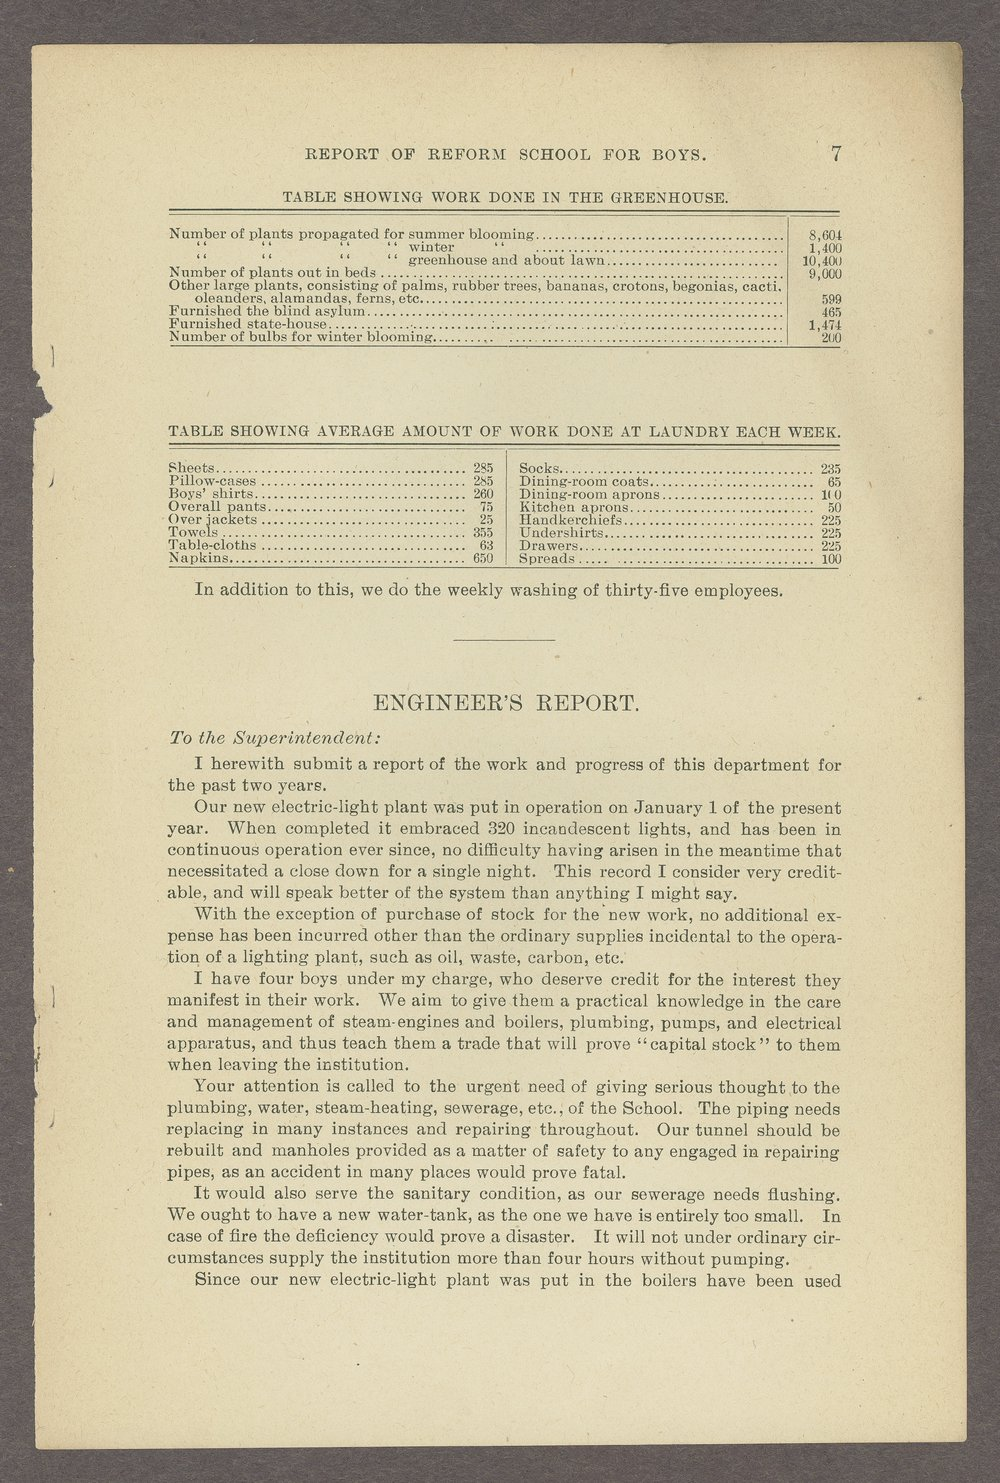 Biennial report of the State Reform School,1898 - 7